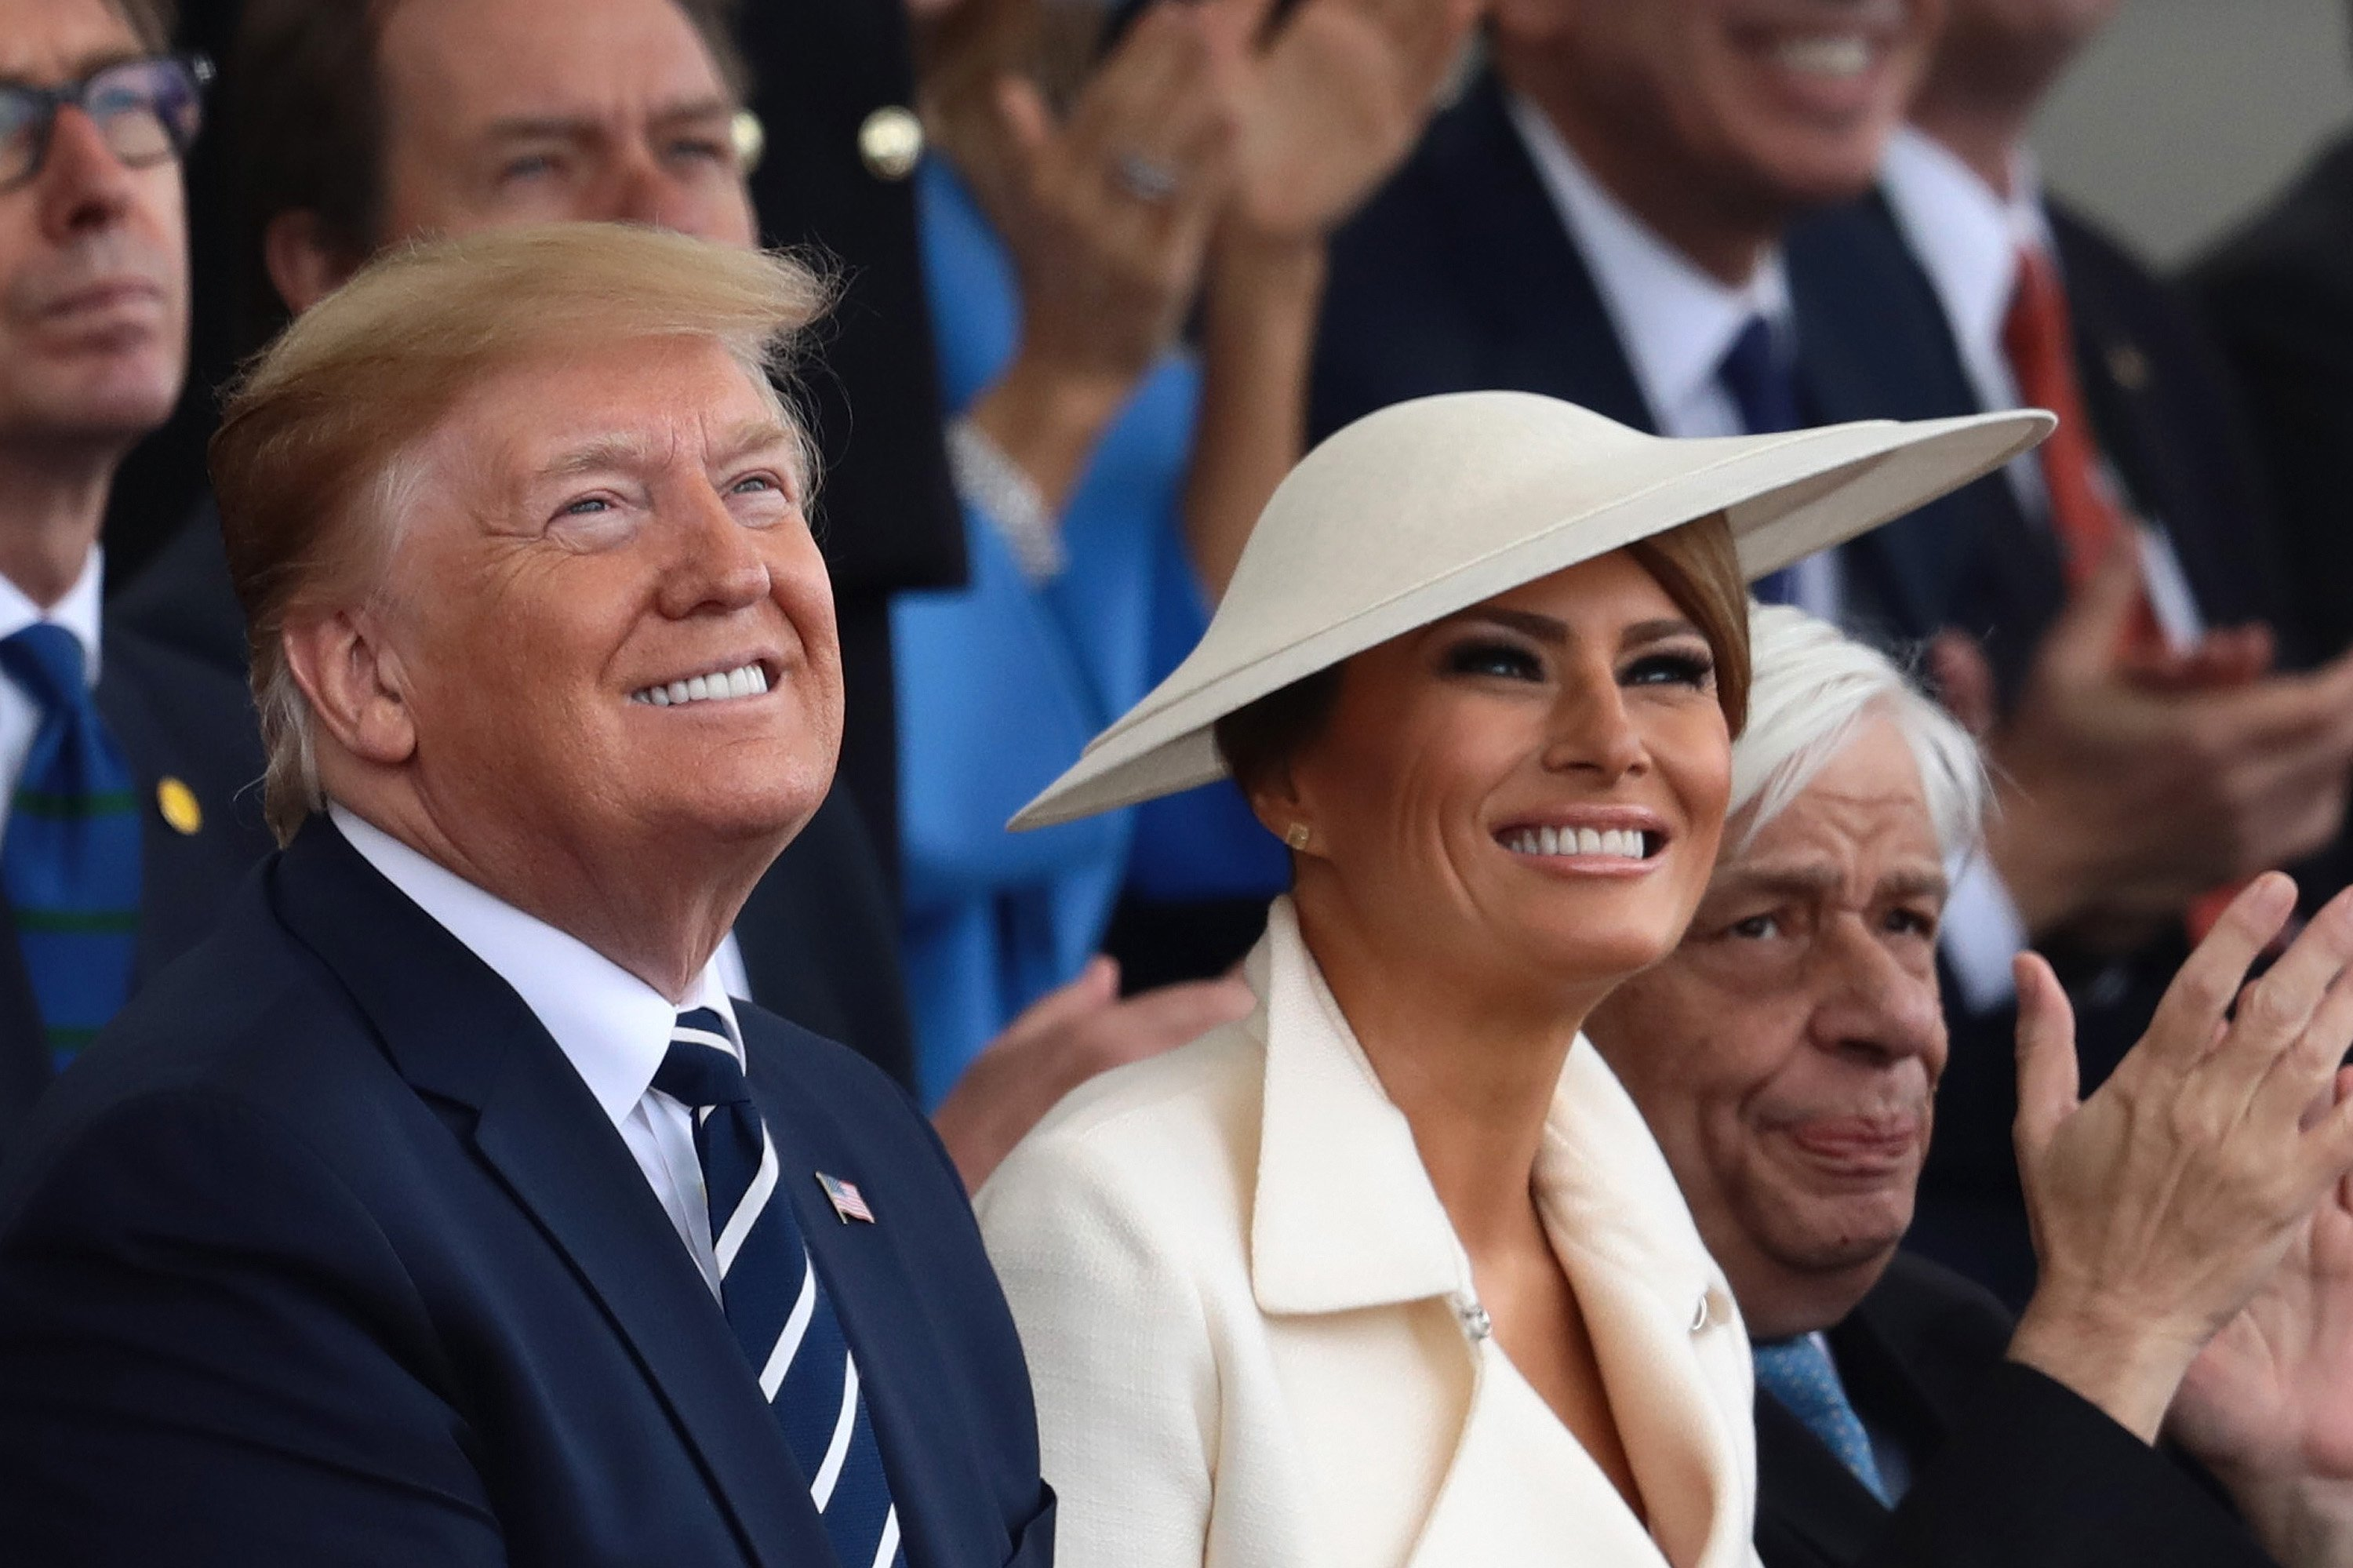 President Donald Trump and Melania Trump in Portsmouth for the 7th D-Day commemoration | Photo: Getty Images